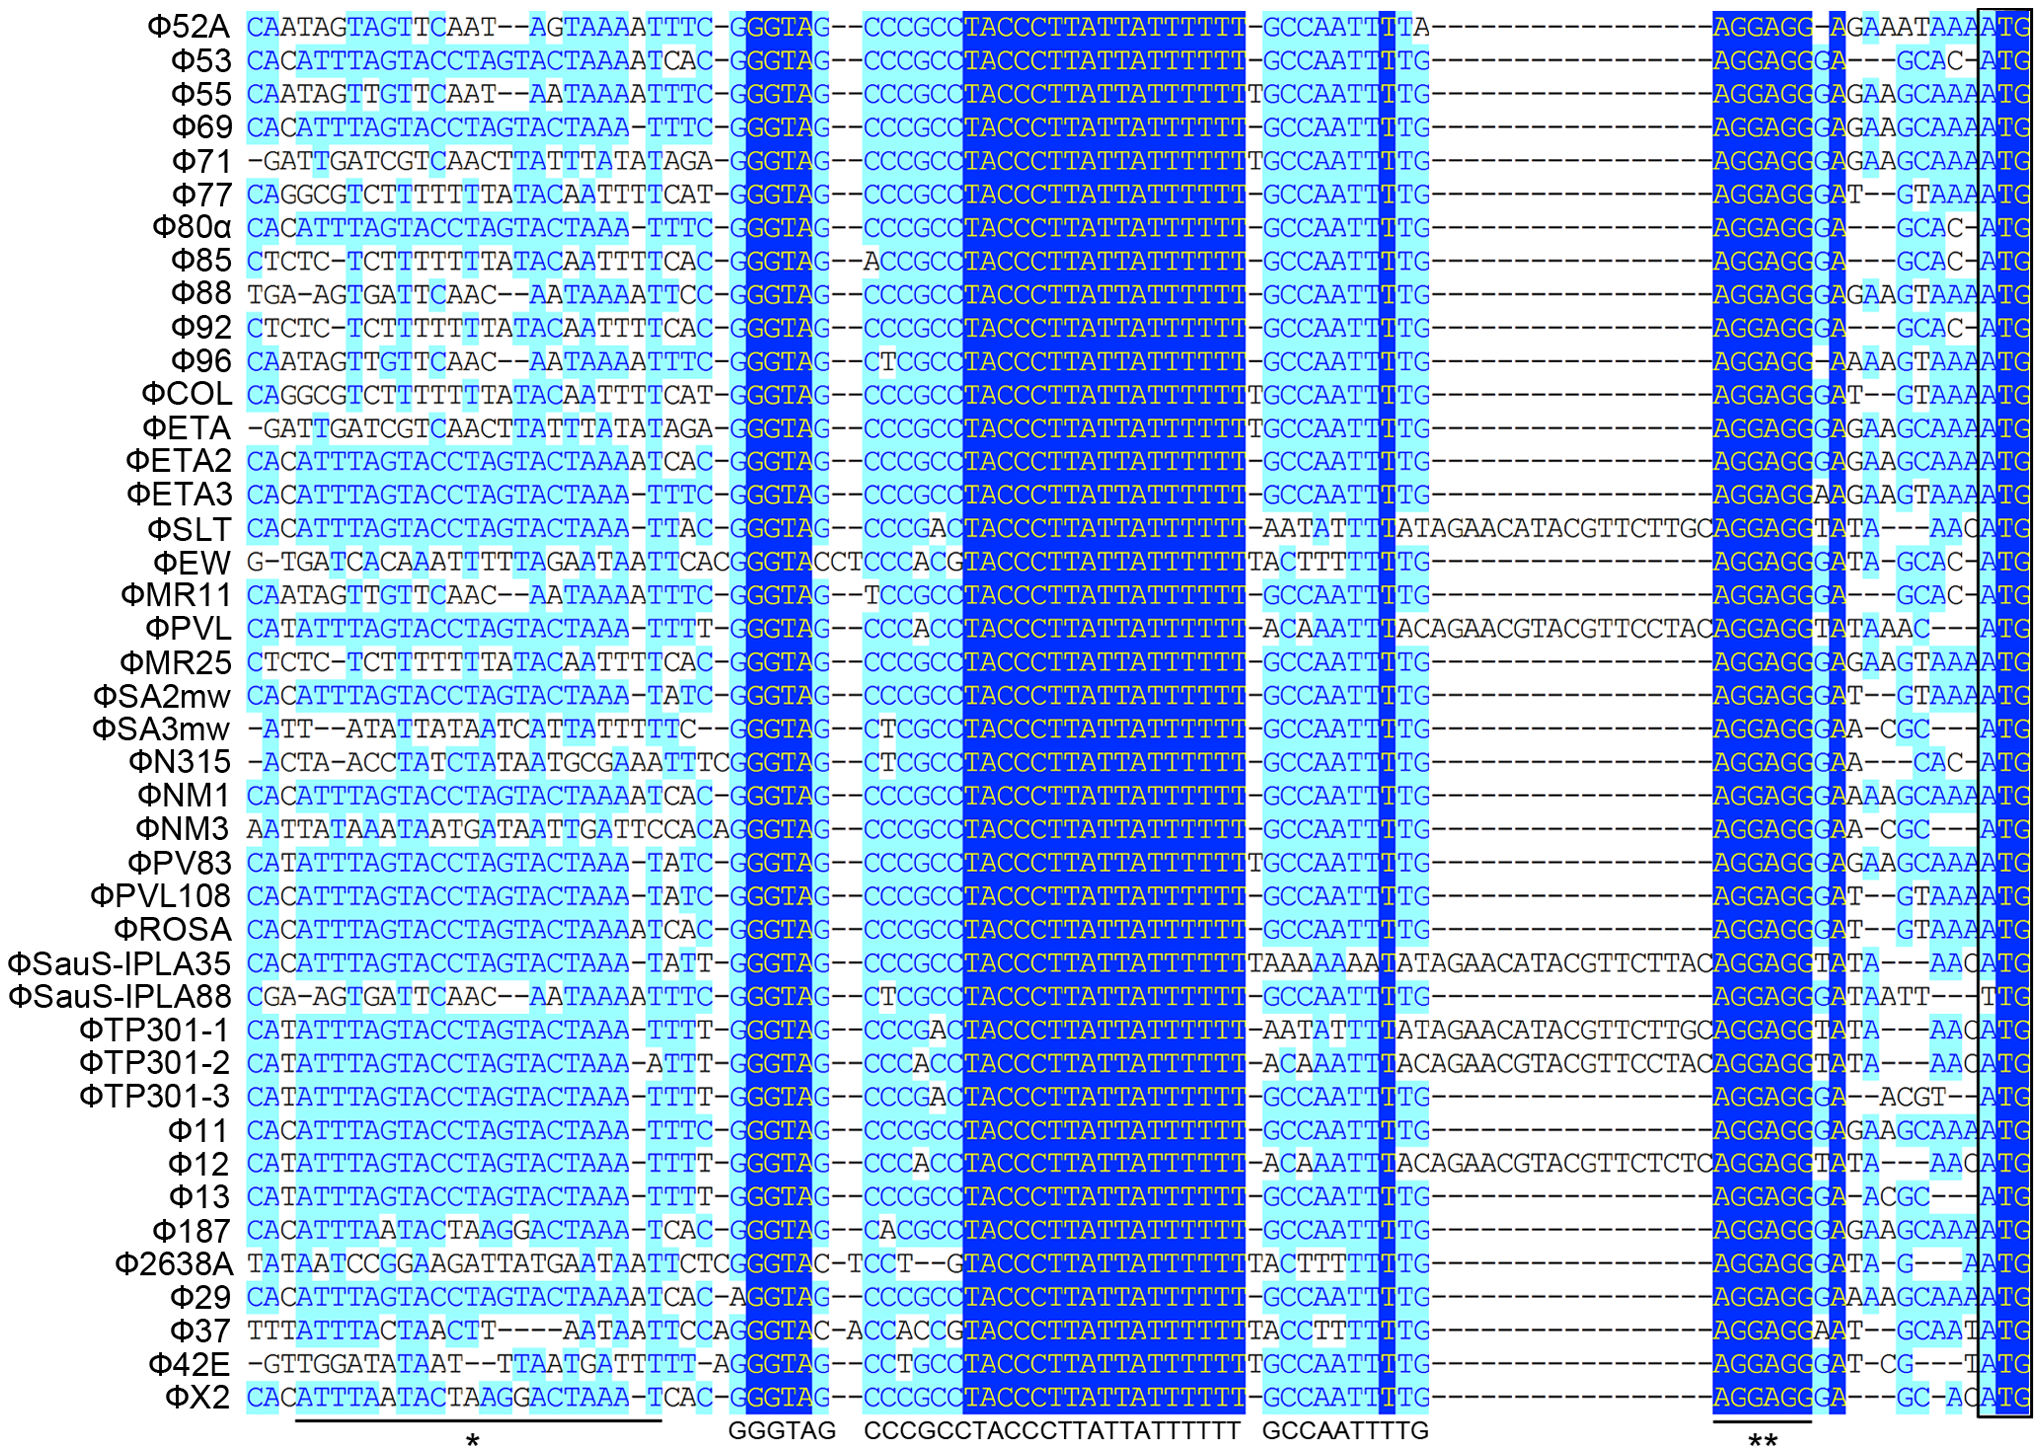 Sequence analysis of 5′-UTR of <i>int</i> in 42 <i>S. aureus</i> prophages.